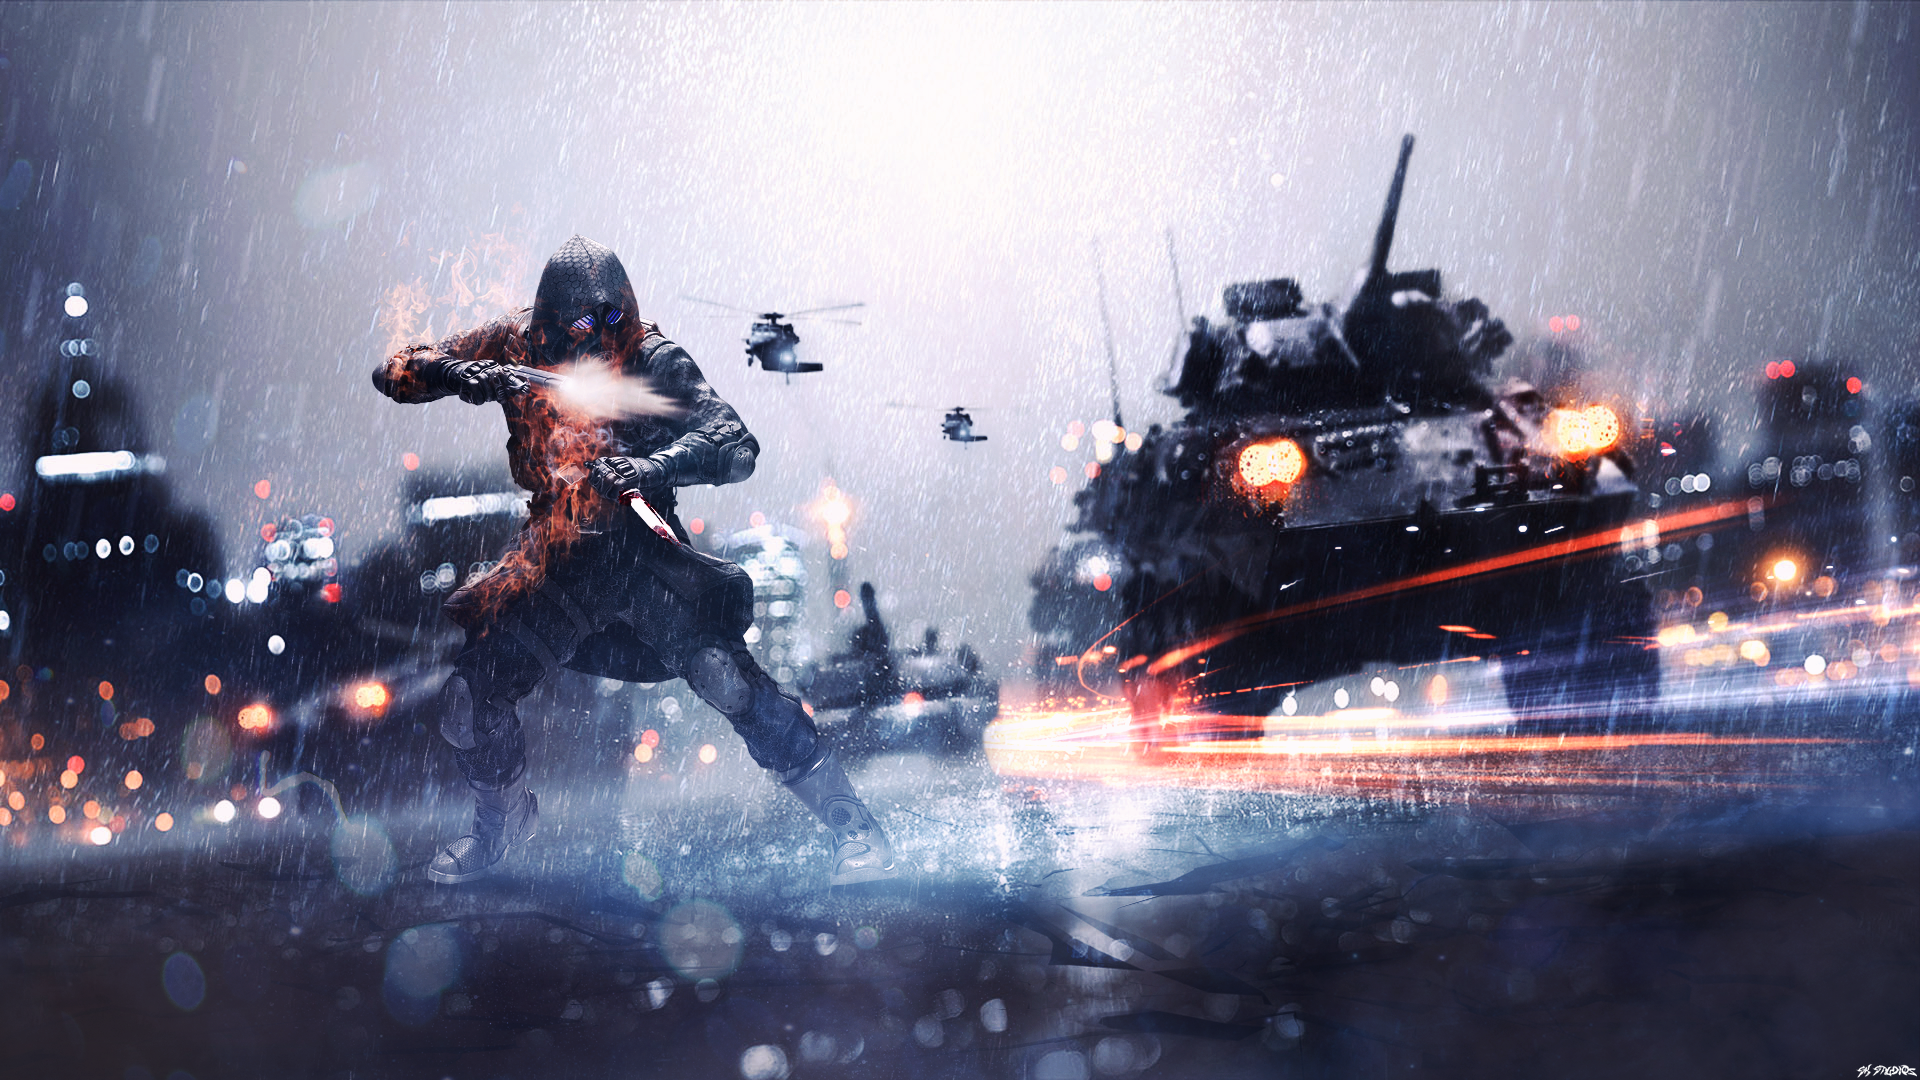 Bf4 vector hd wallpaper background image 1920x1080 - Bf4 wallpaper ...